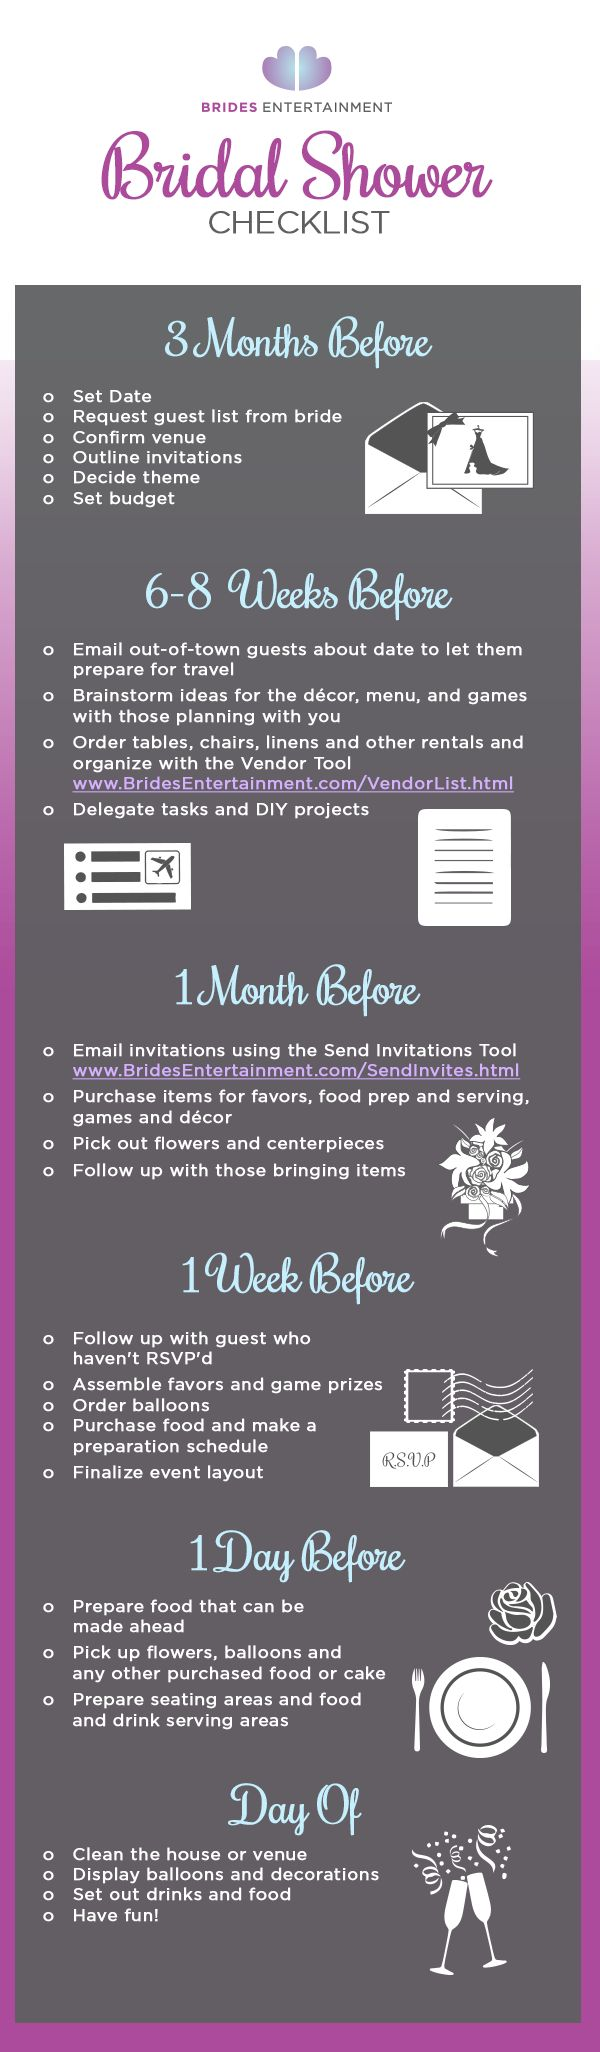 wedding planning checklist spreadsheet free%0A Bridal Shower Checklist More